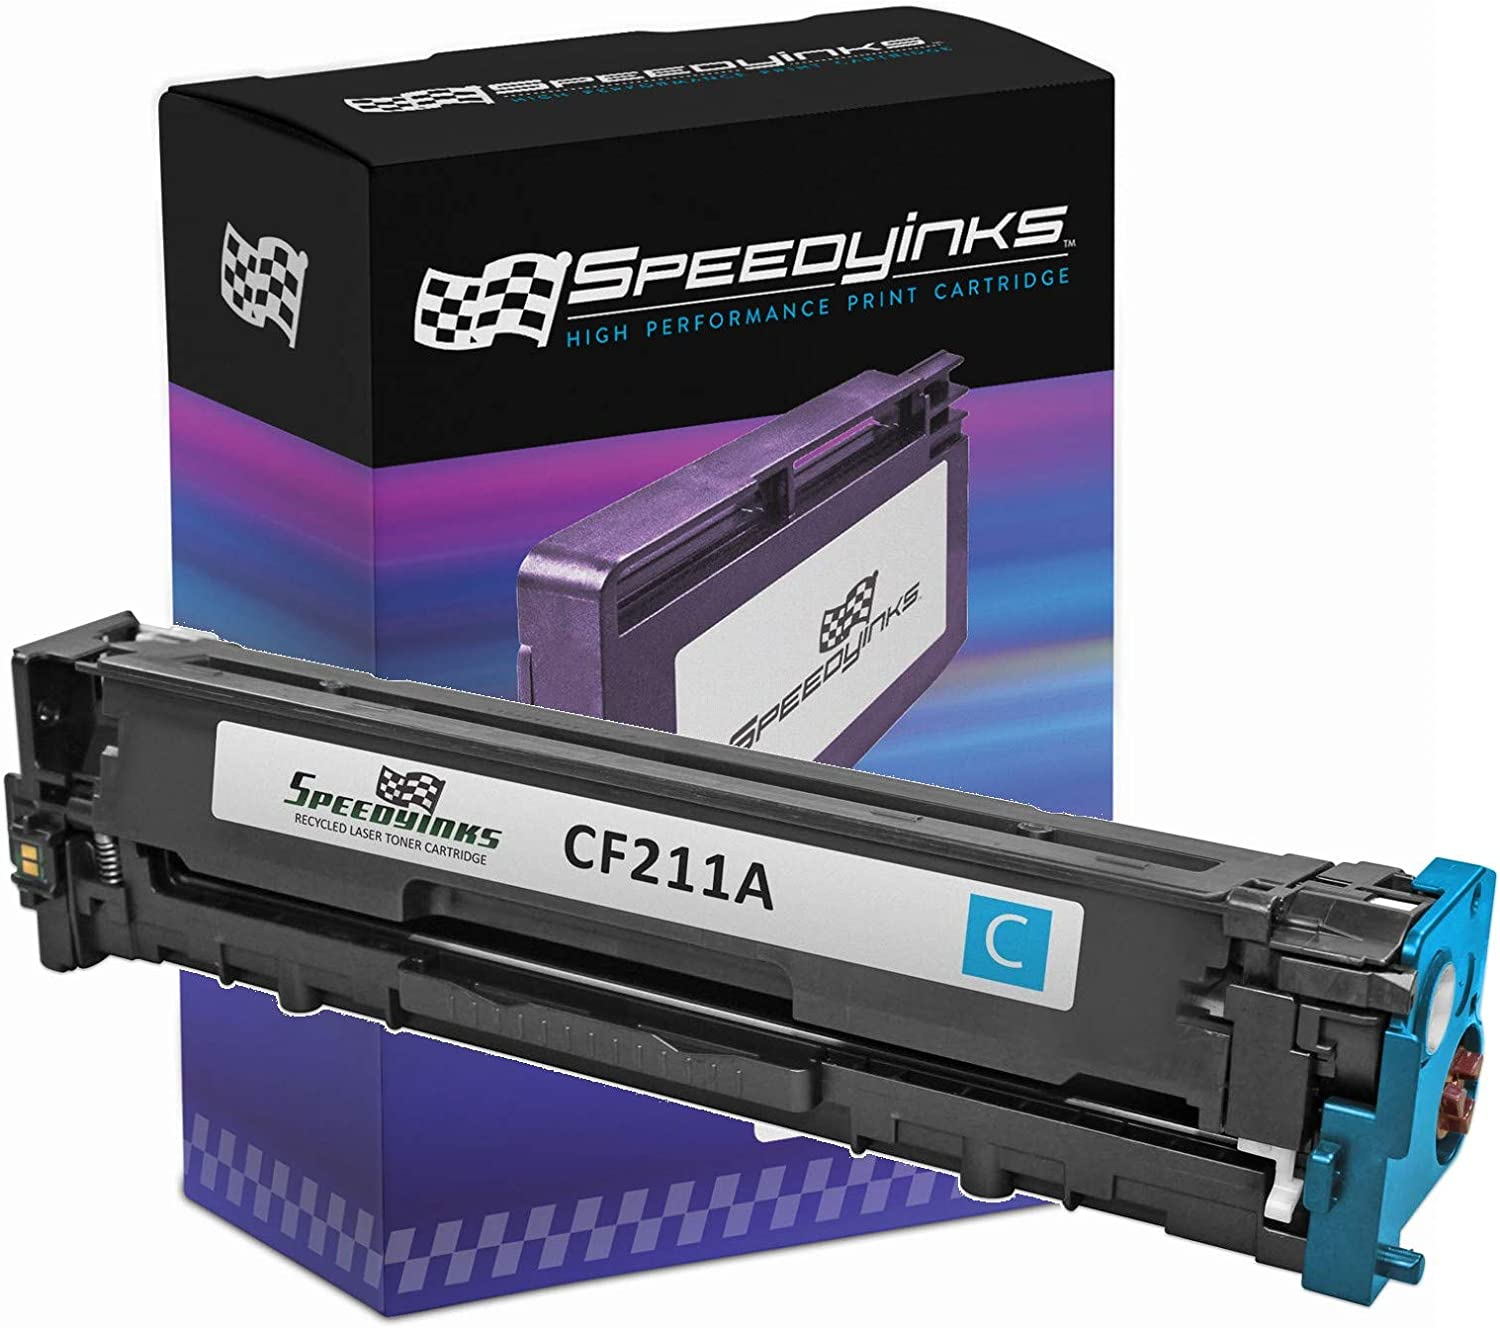 Speedy Inks Remanufactured Toner Cartridge Replacement for HP 131A CF211A (Cyan)